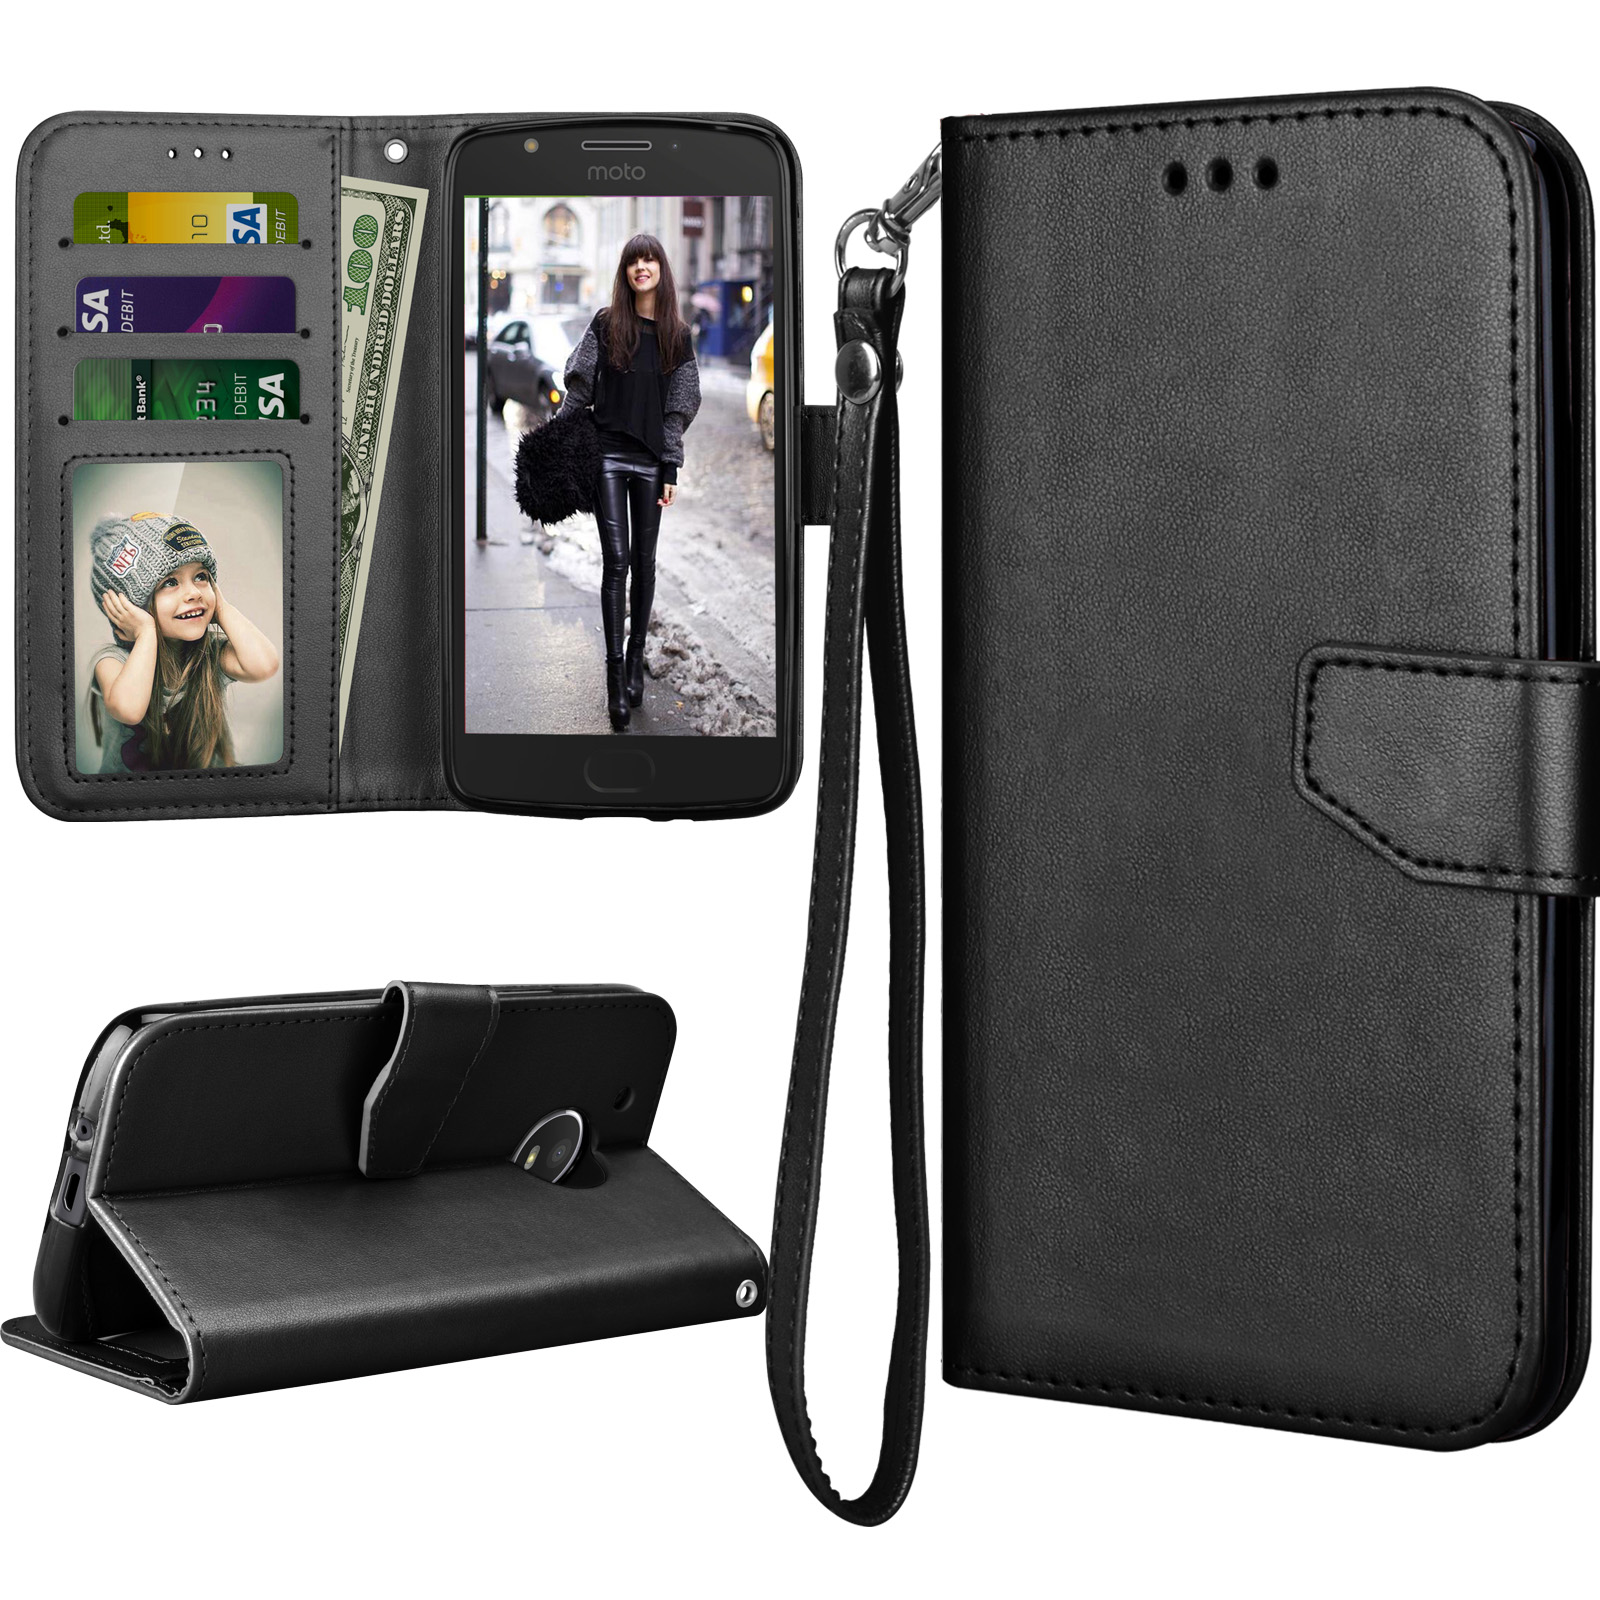 Moto E4 Case, 2017 Motorola Moto E 4th Generation Flip Cover, Tekcoo Luxury PU Leather [Coal Black] Wallet ID Cash Credit Card Slots Holder Clutch Protective Carrying Cases w/ Kickstand & Lanyard